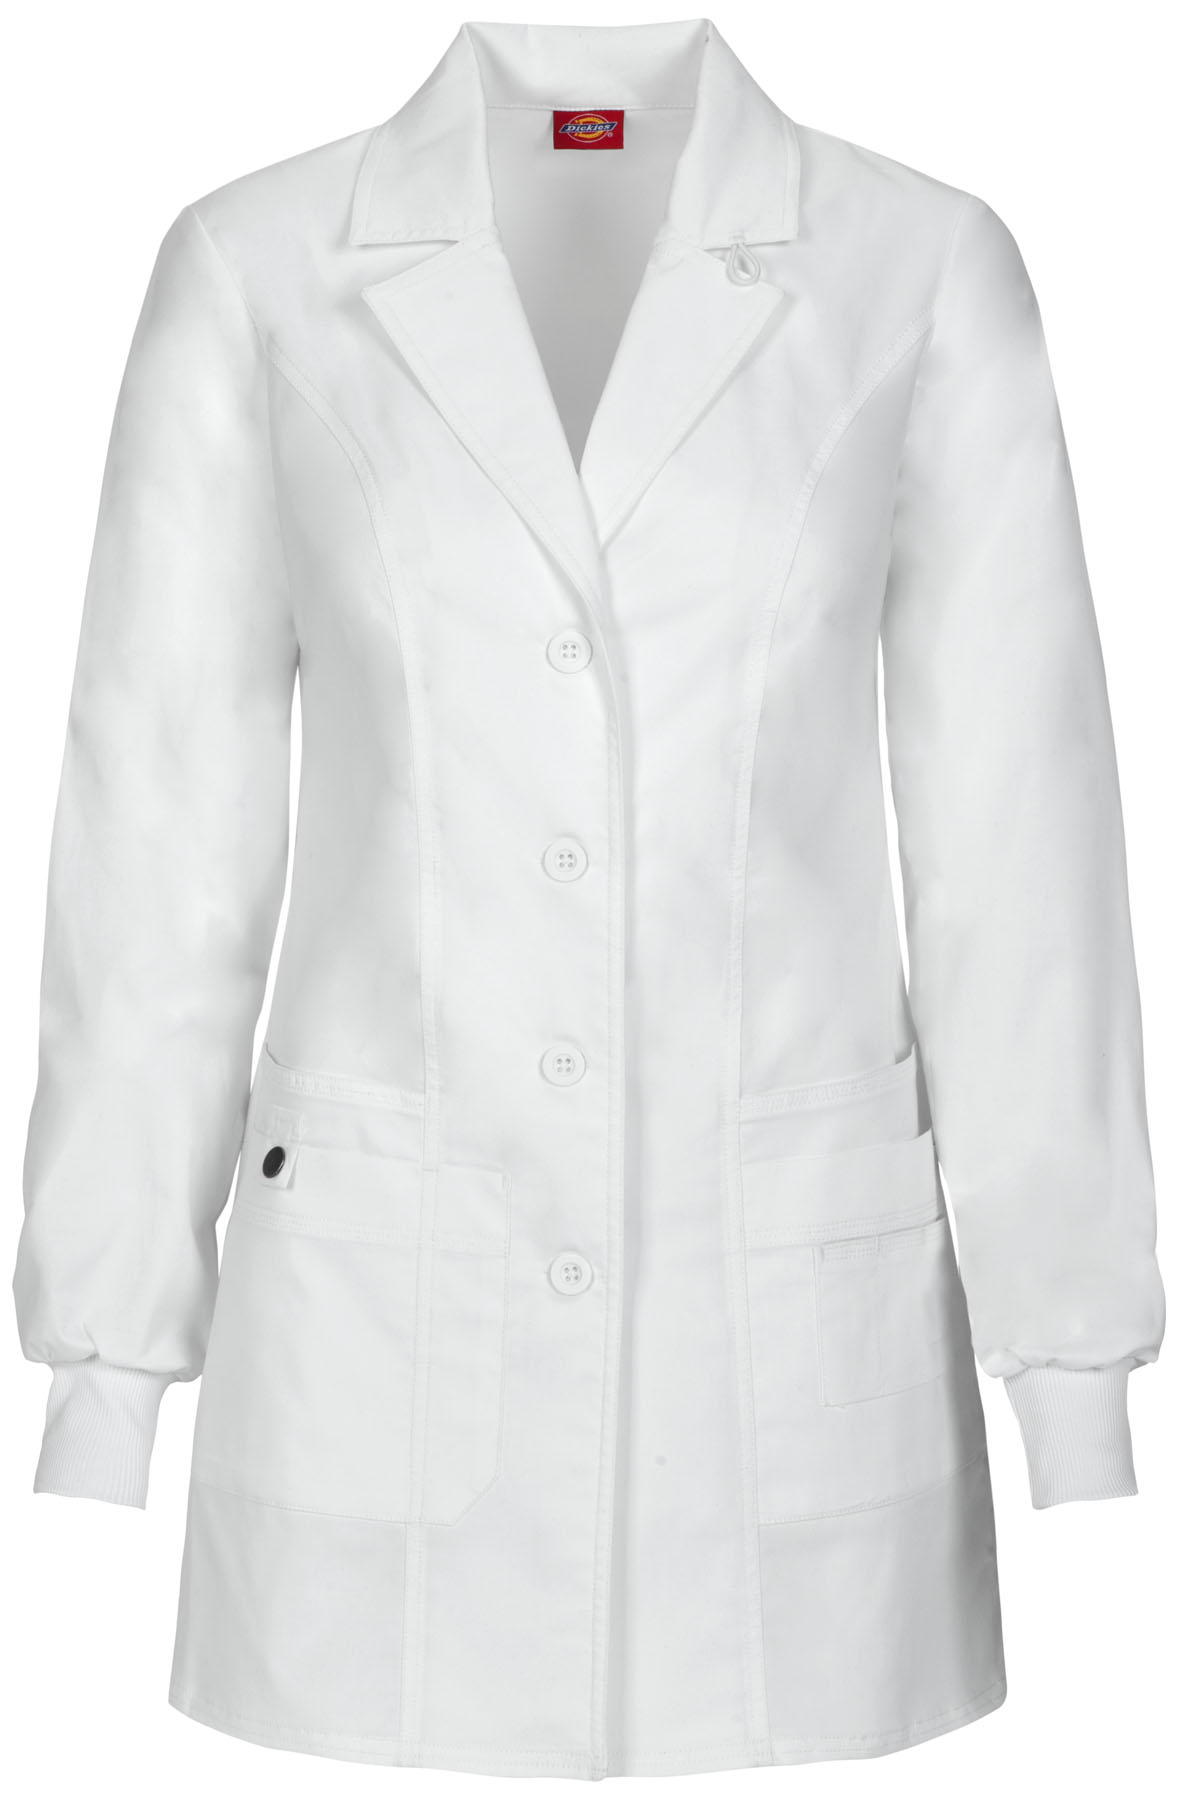 32 Quot Women S Lab Coat Avida Healthwear Inc